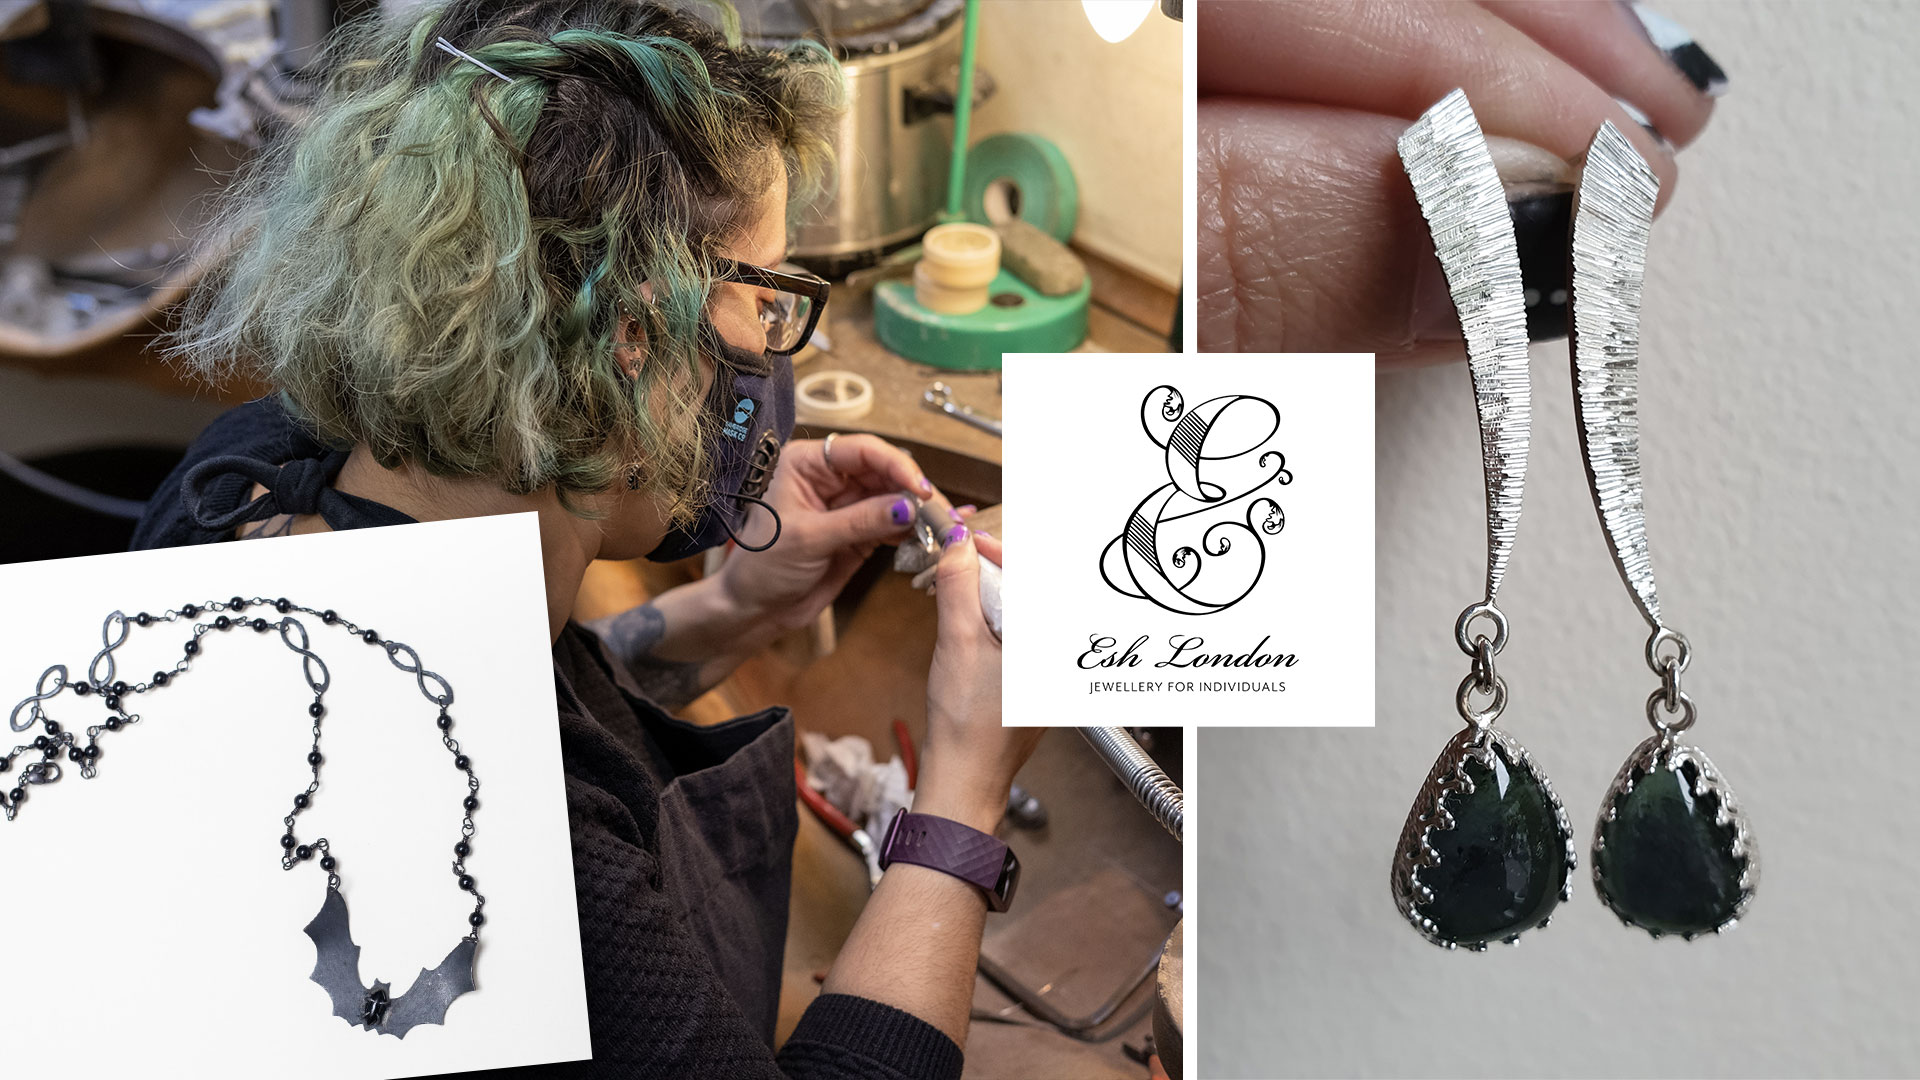 Self employment is how self-taught jeweller, Esh, is shaping her future